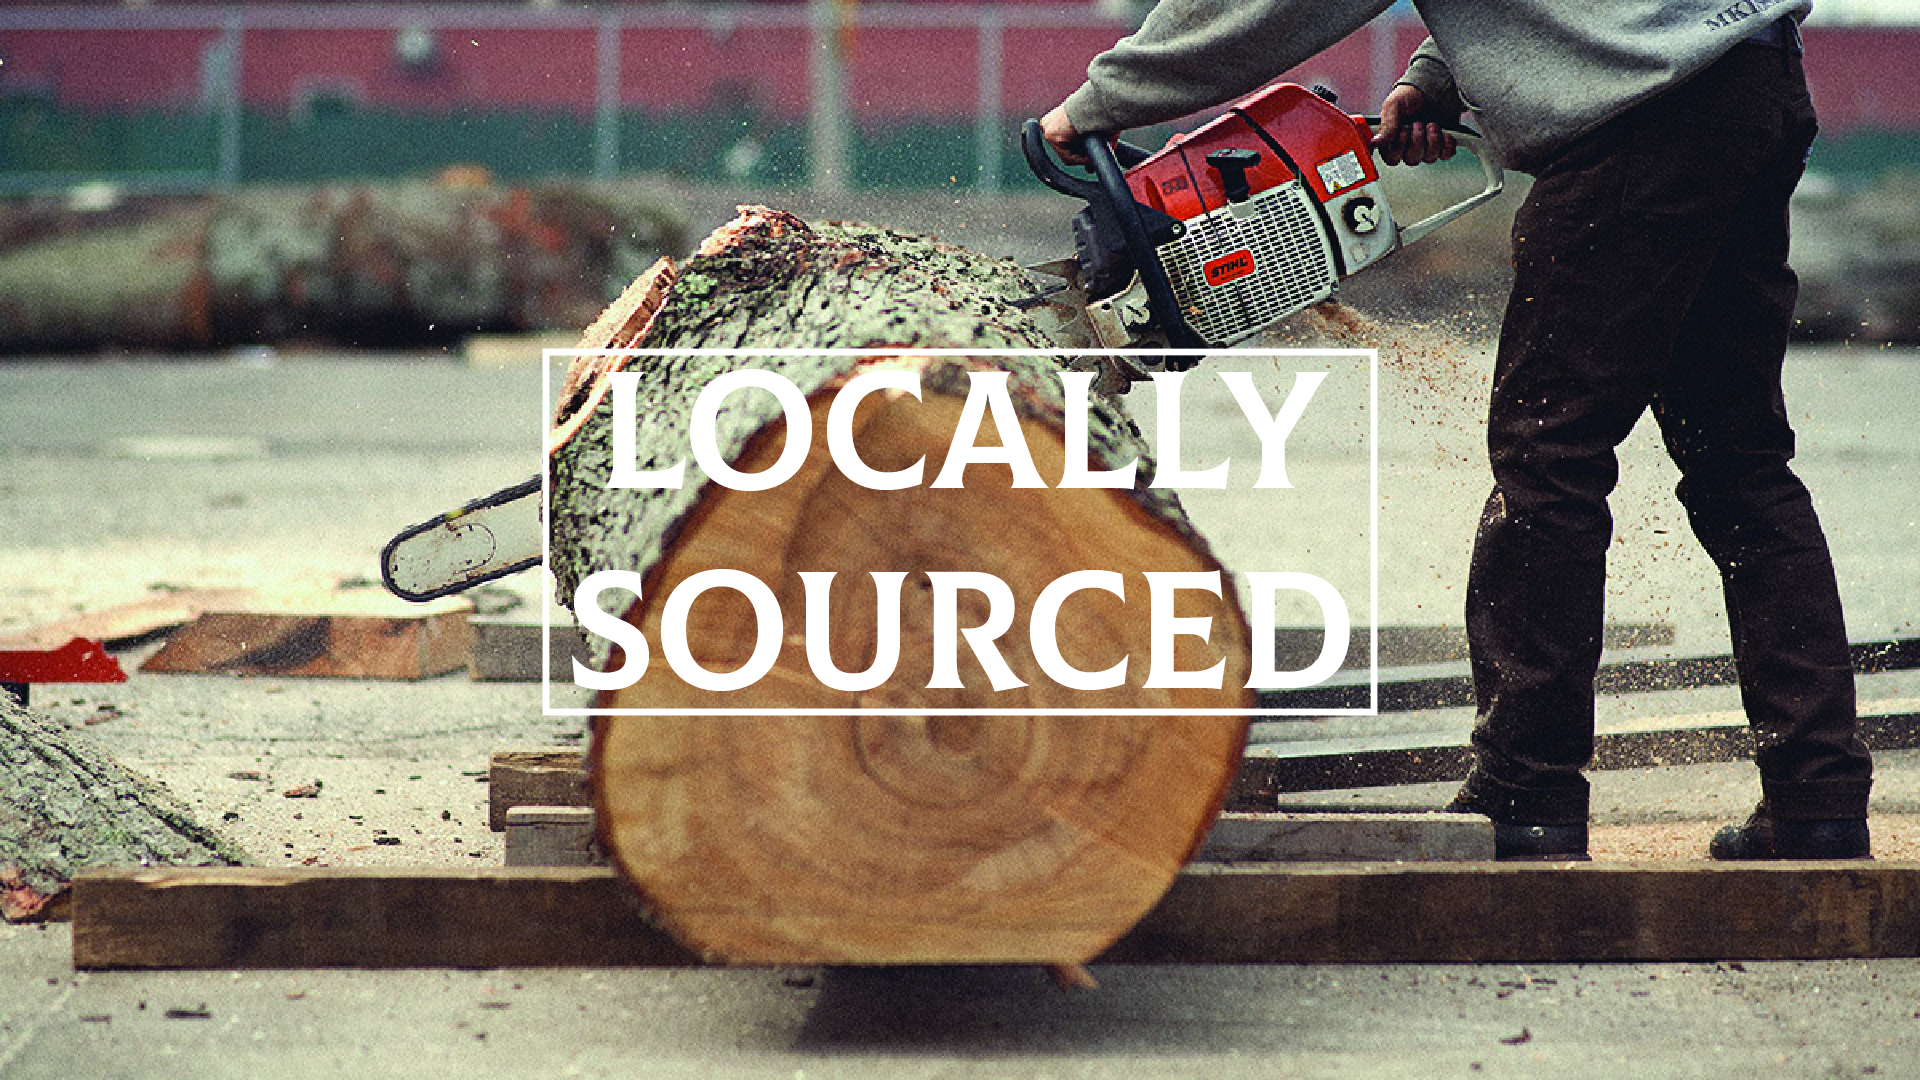 Locally Sourced Text Photo.jpg